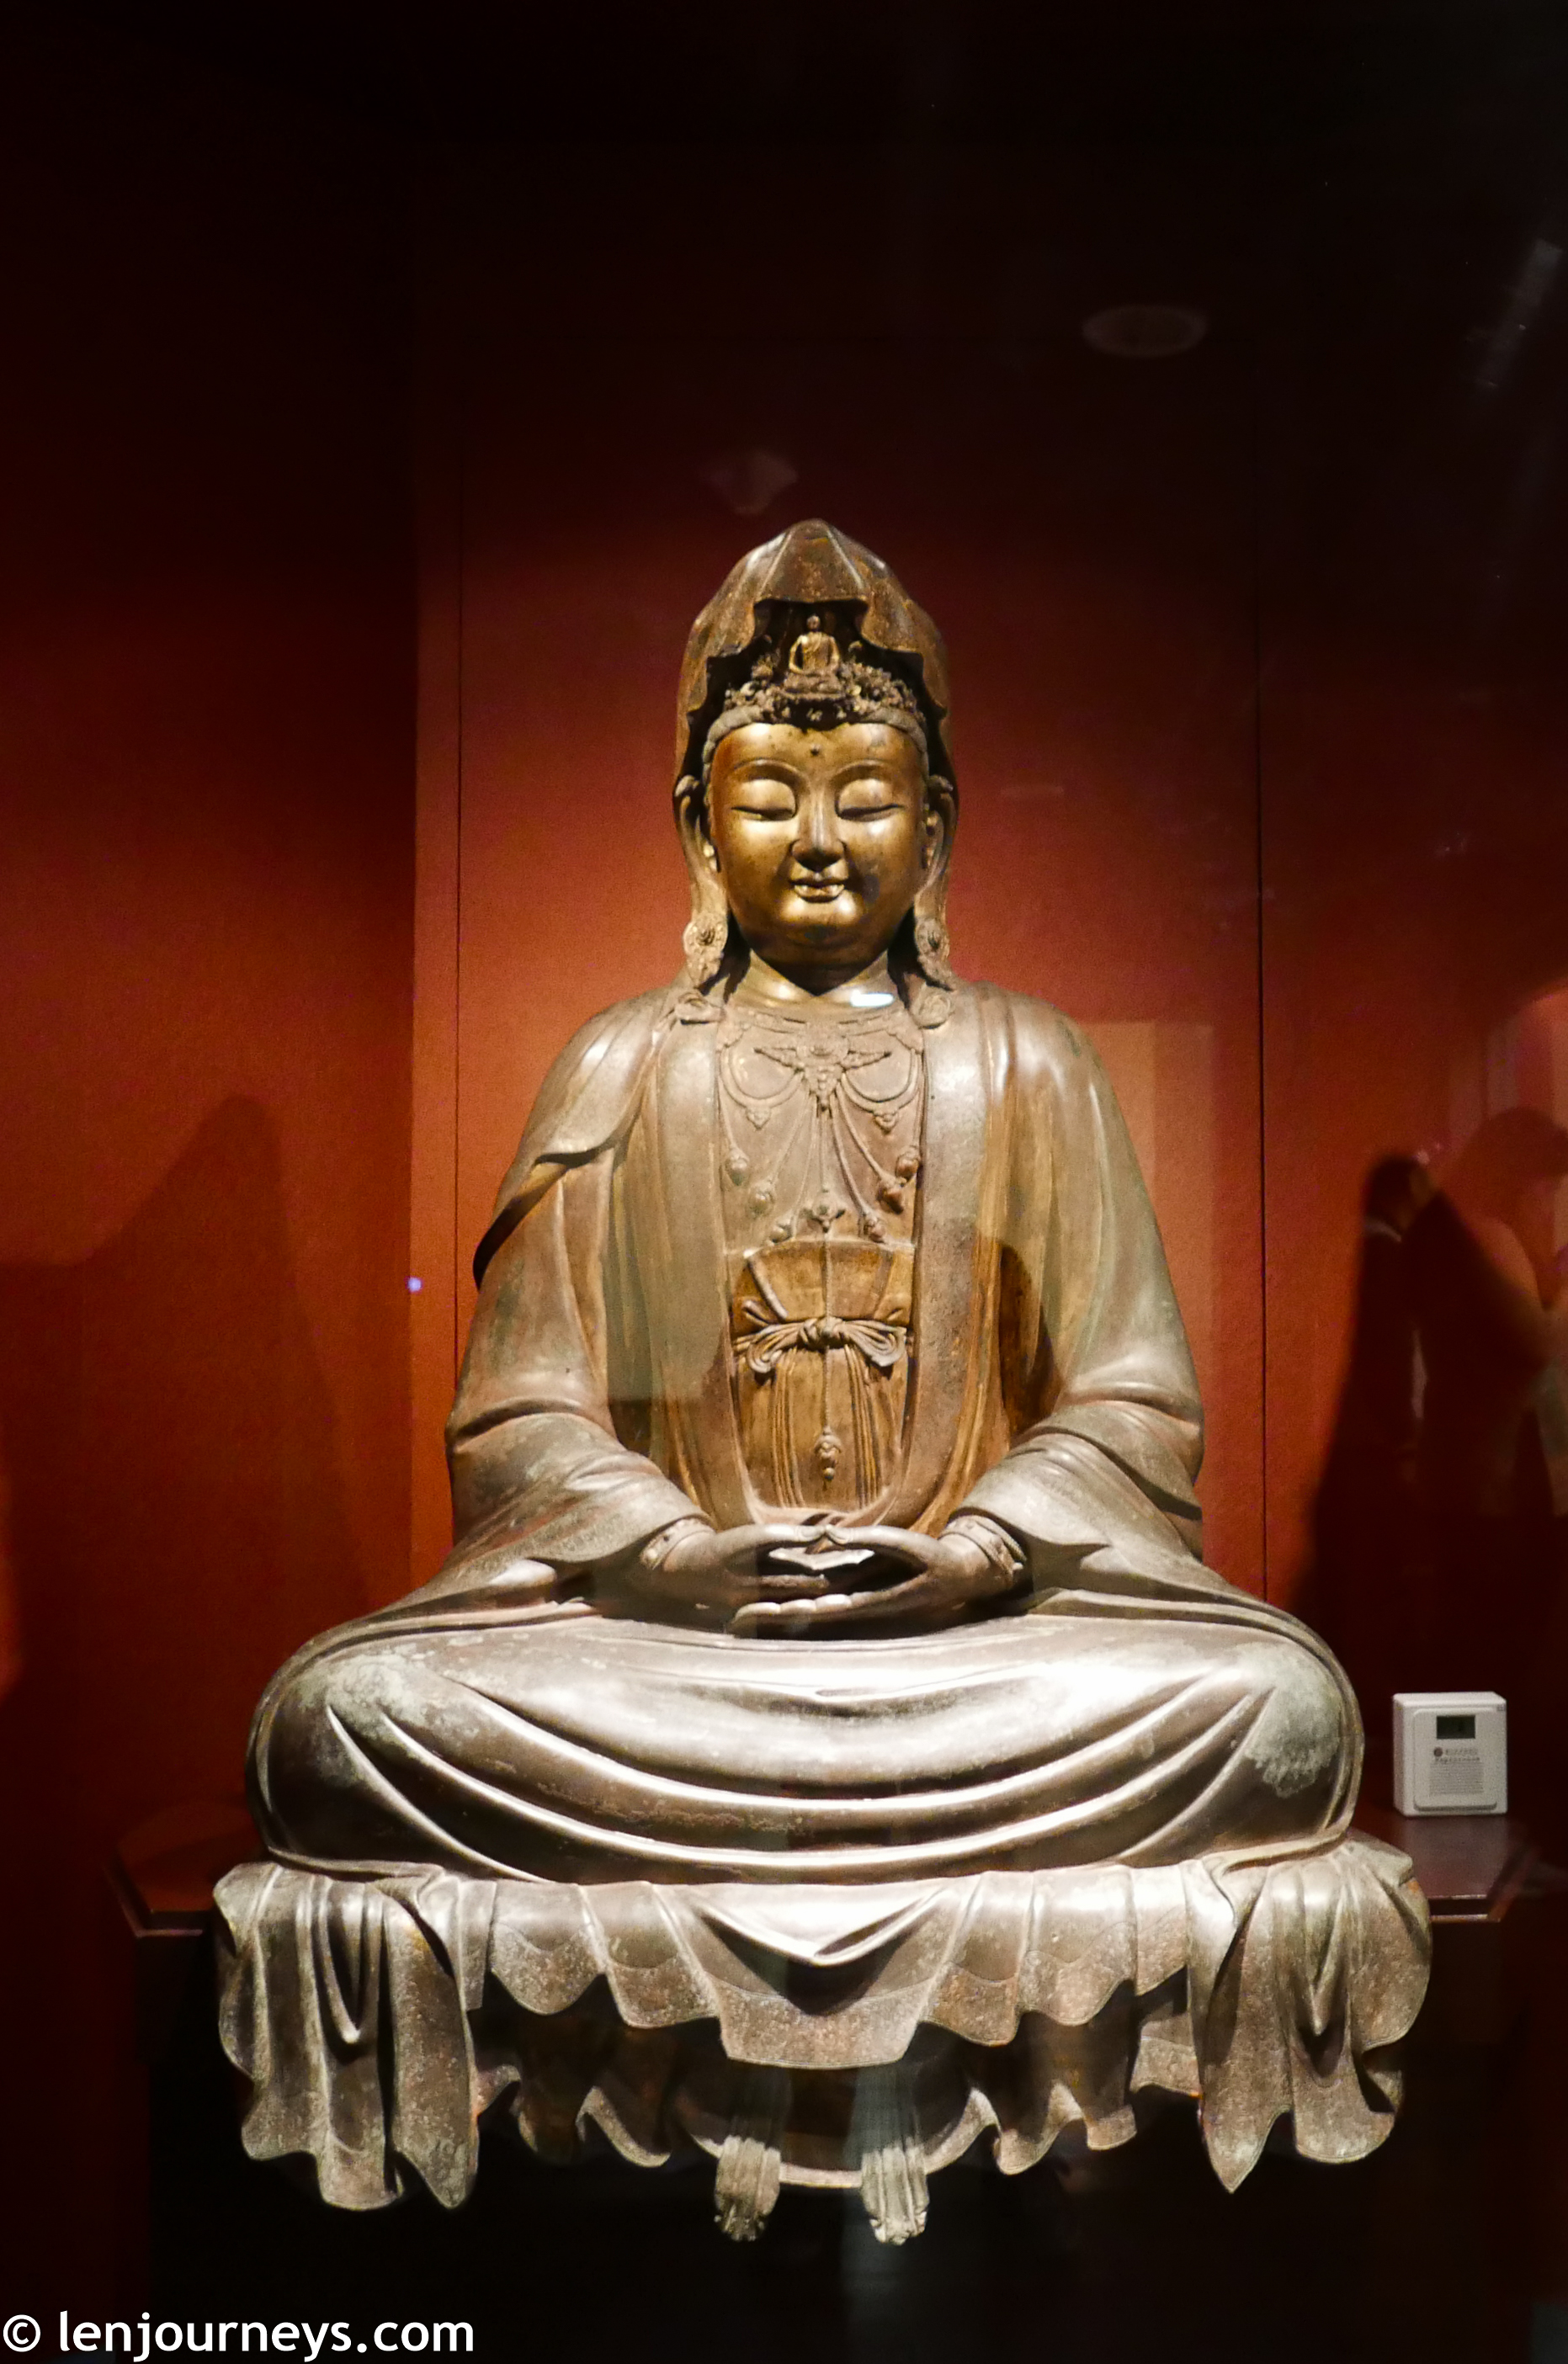 Guan-Yin statue in National Palace Museum